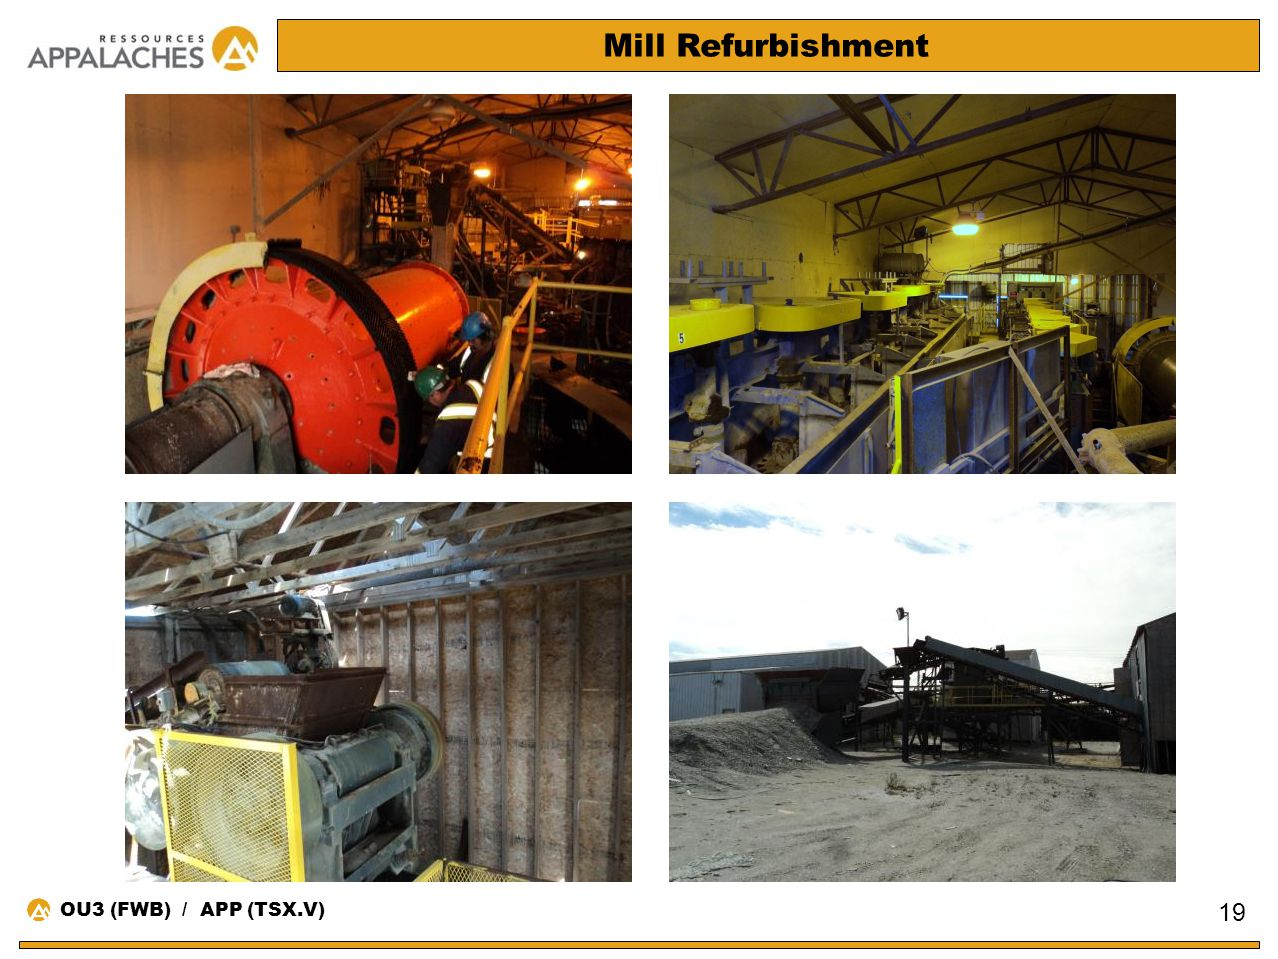 Mill Refurbishment OU3 (FWB) / APP (TSX.V)